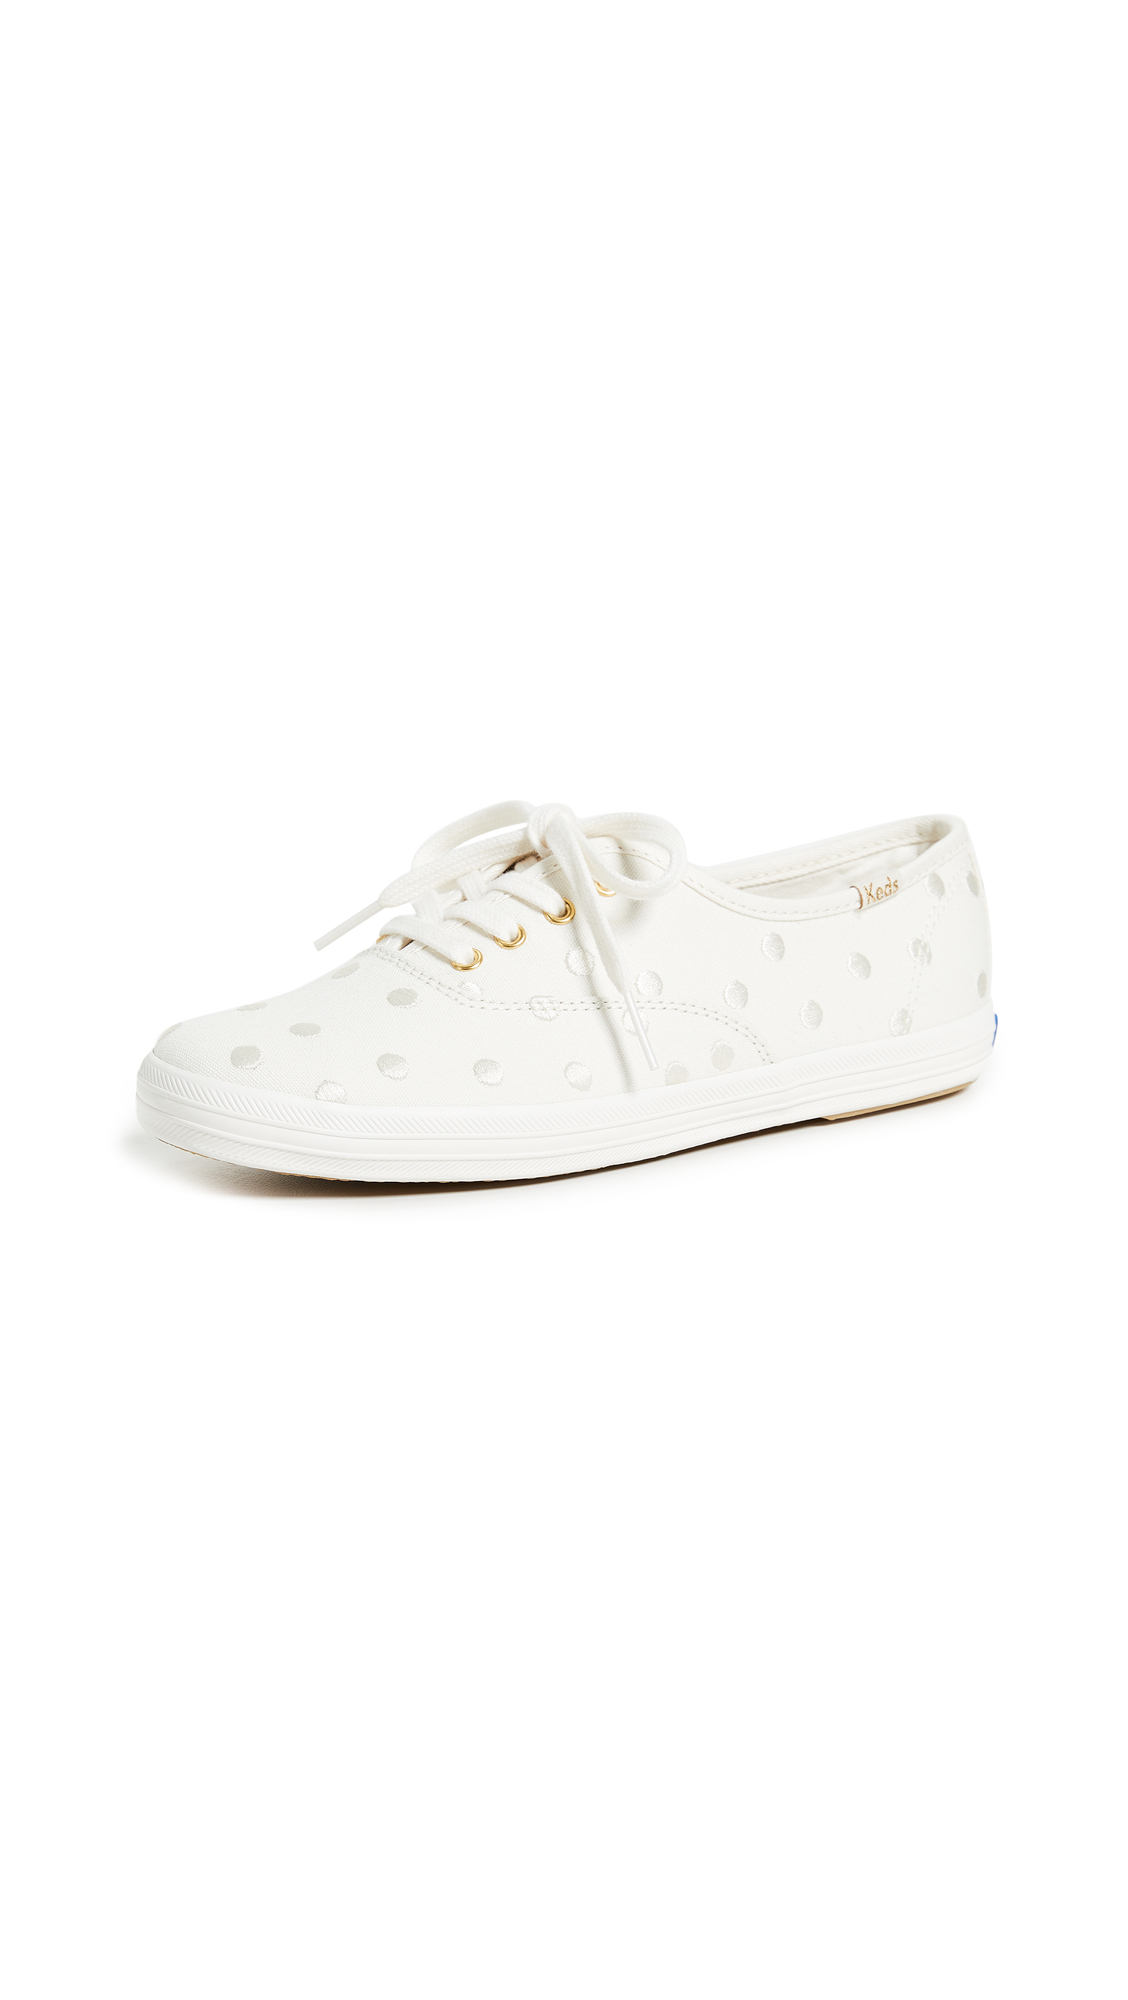 Keds x Kate Spade New York Dancing Dot Champion Sneakers - Cream